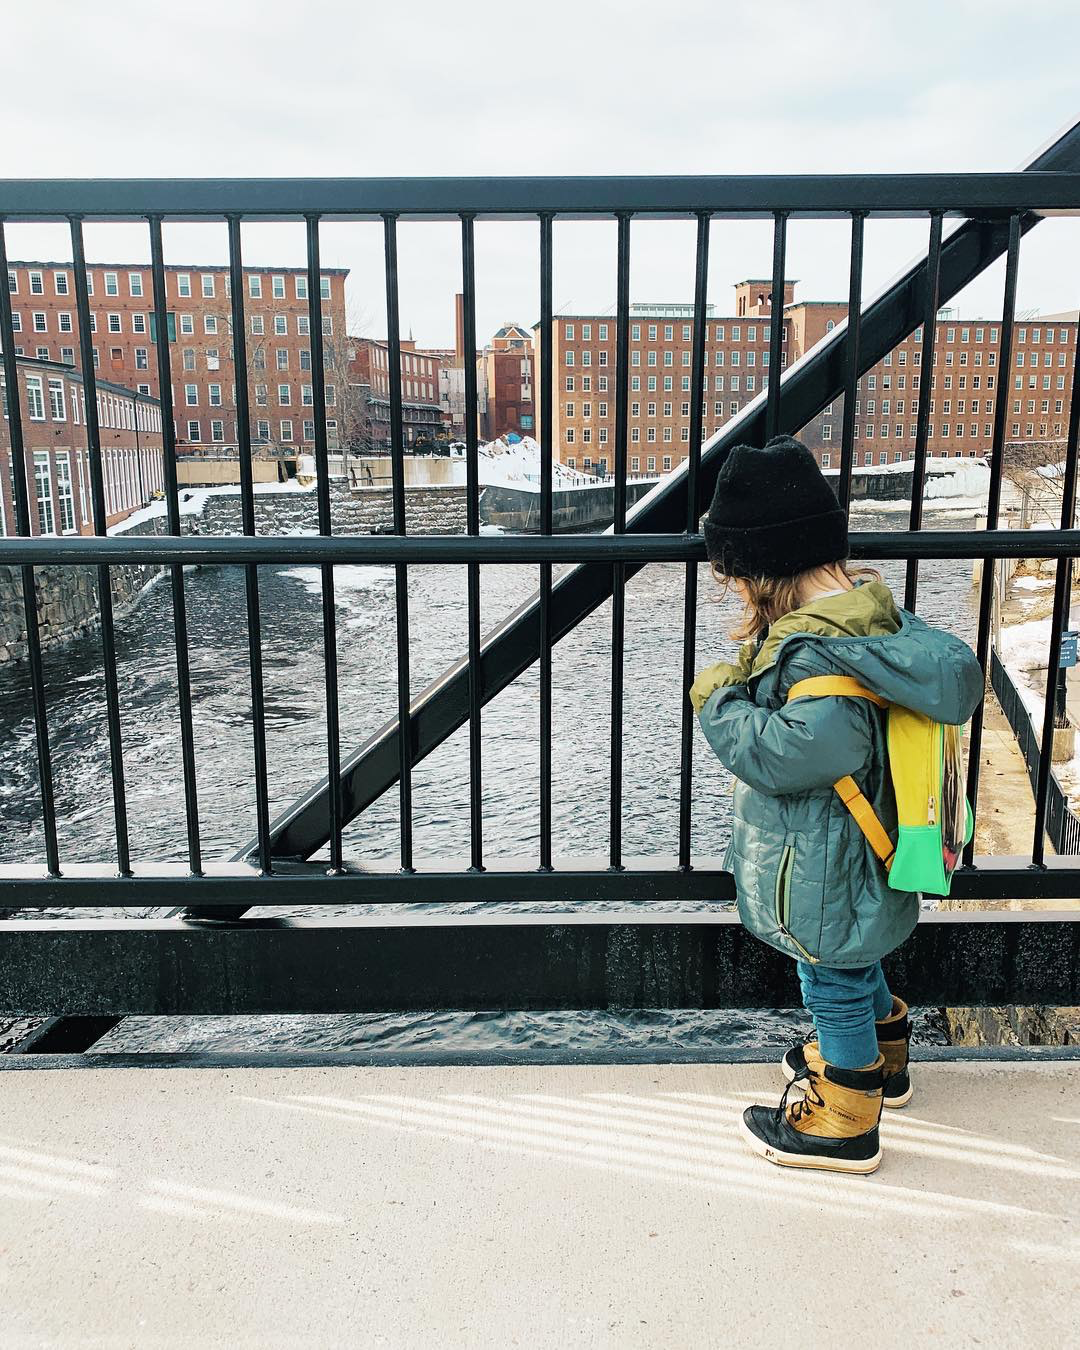 Child in a winter coat and a black hat wearing a yellow backpack standing on a bridge overlooking a river and some brick mills.